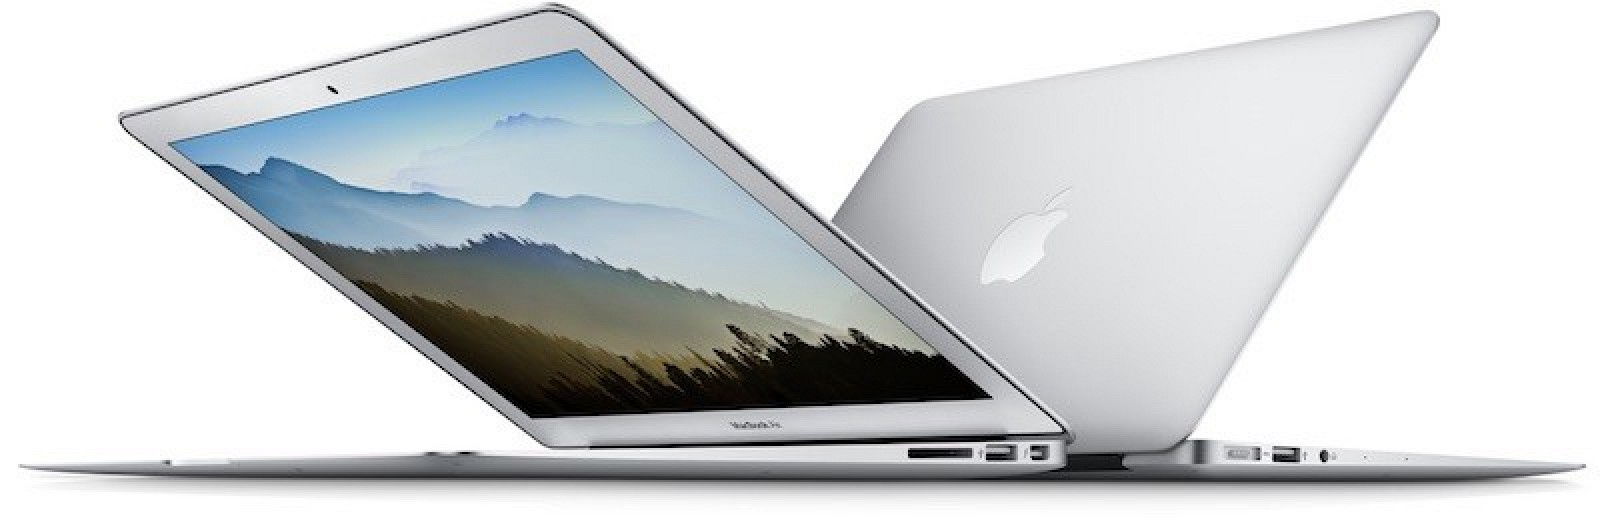 Apple to Release New Entry-Level 13-inch MacBook This Year, Likely Replacing MacBook Air